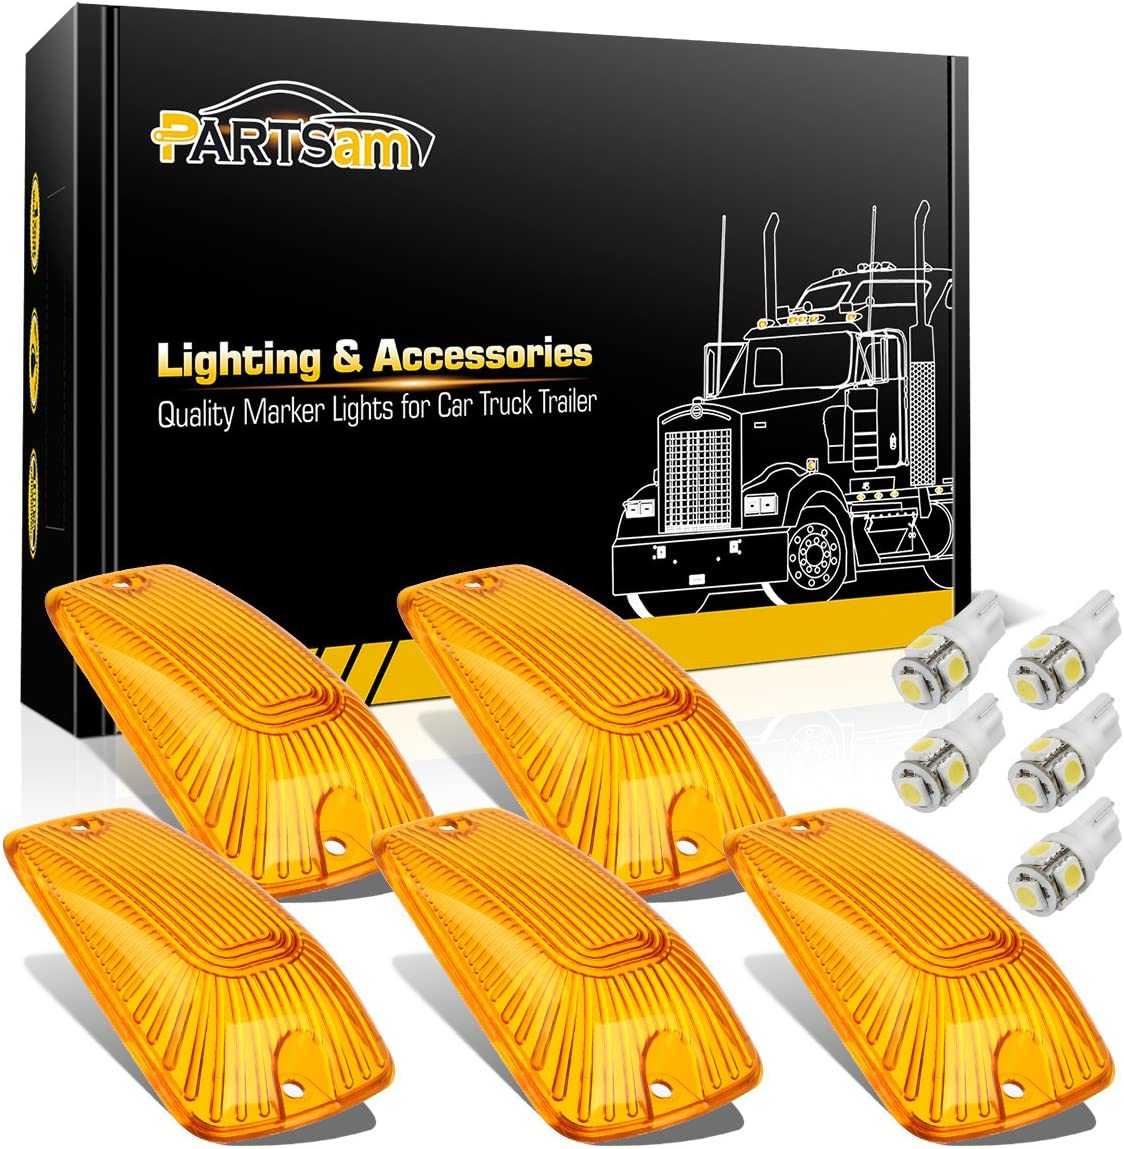 T10 White 5050 LED Bulbs Compatible with Chevy//GMC C1500 C2500 C3500 C5500 C6000 C6500 C7000 C7500 K1500 K2500 K3500 K5500 K6000 K6500 K7000 K7500 1988-2002 Partsam 5X Amber Cab Marker Cover